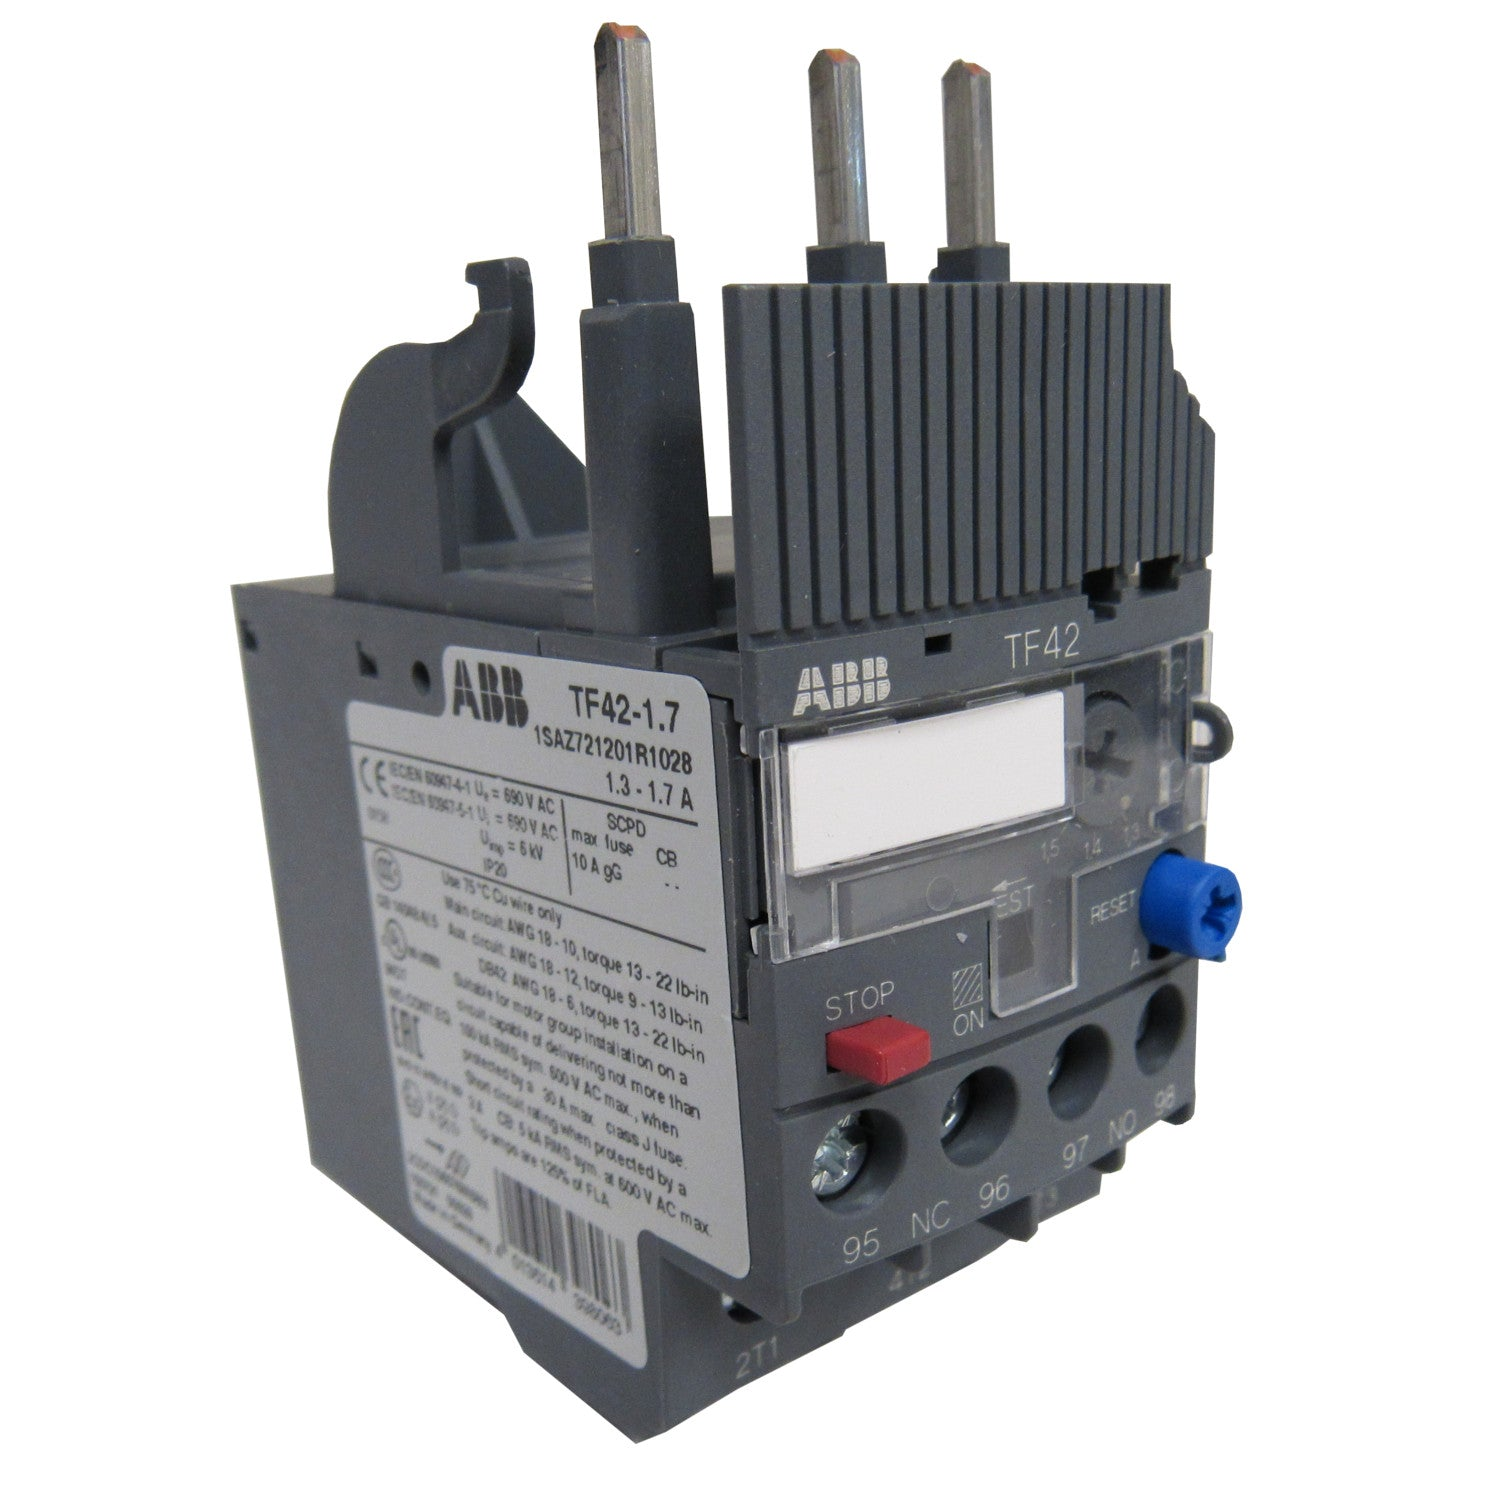 ABB TF42-1 0 THERMAL OVERLOAD RELAY - 0 74-1 00 AMP – PRM Filtration